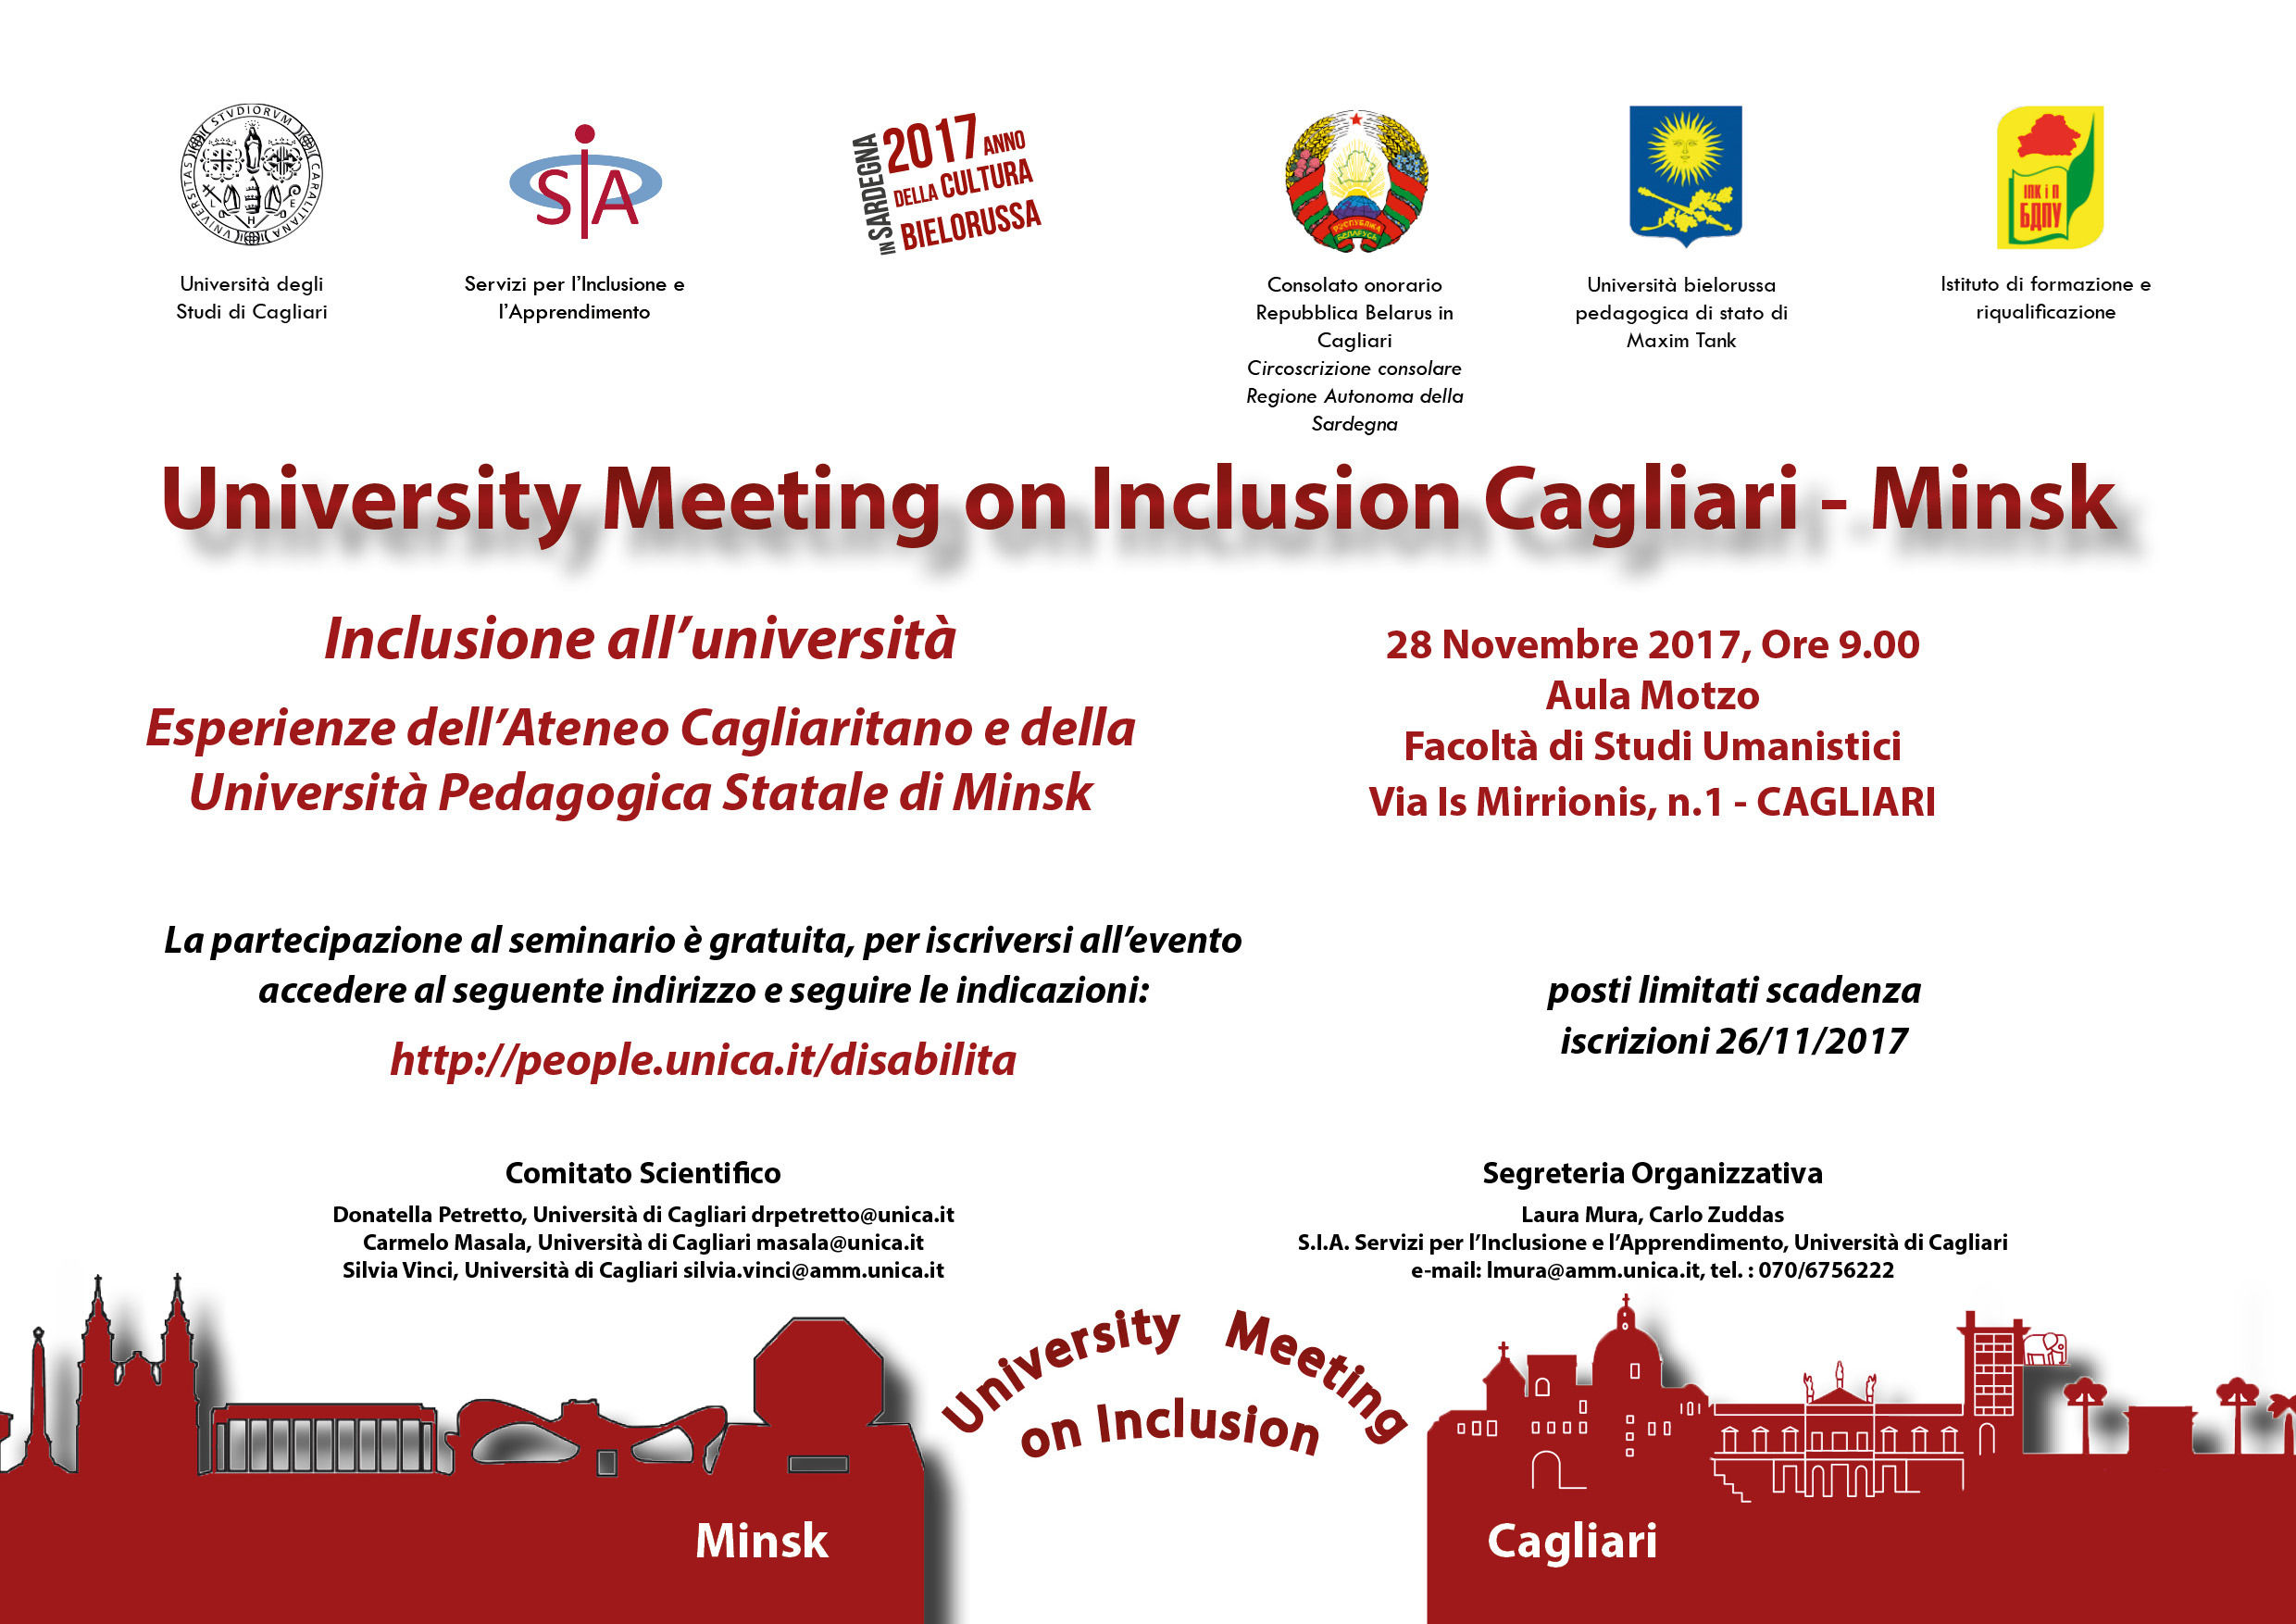 Seminario University Meeting on Inclusion, Cagliari - Minsk - 28 Novembre 2017